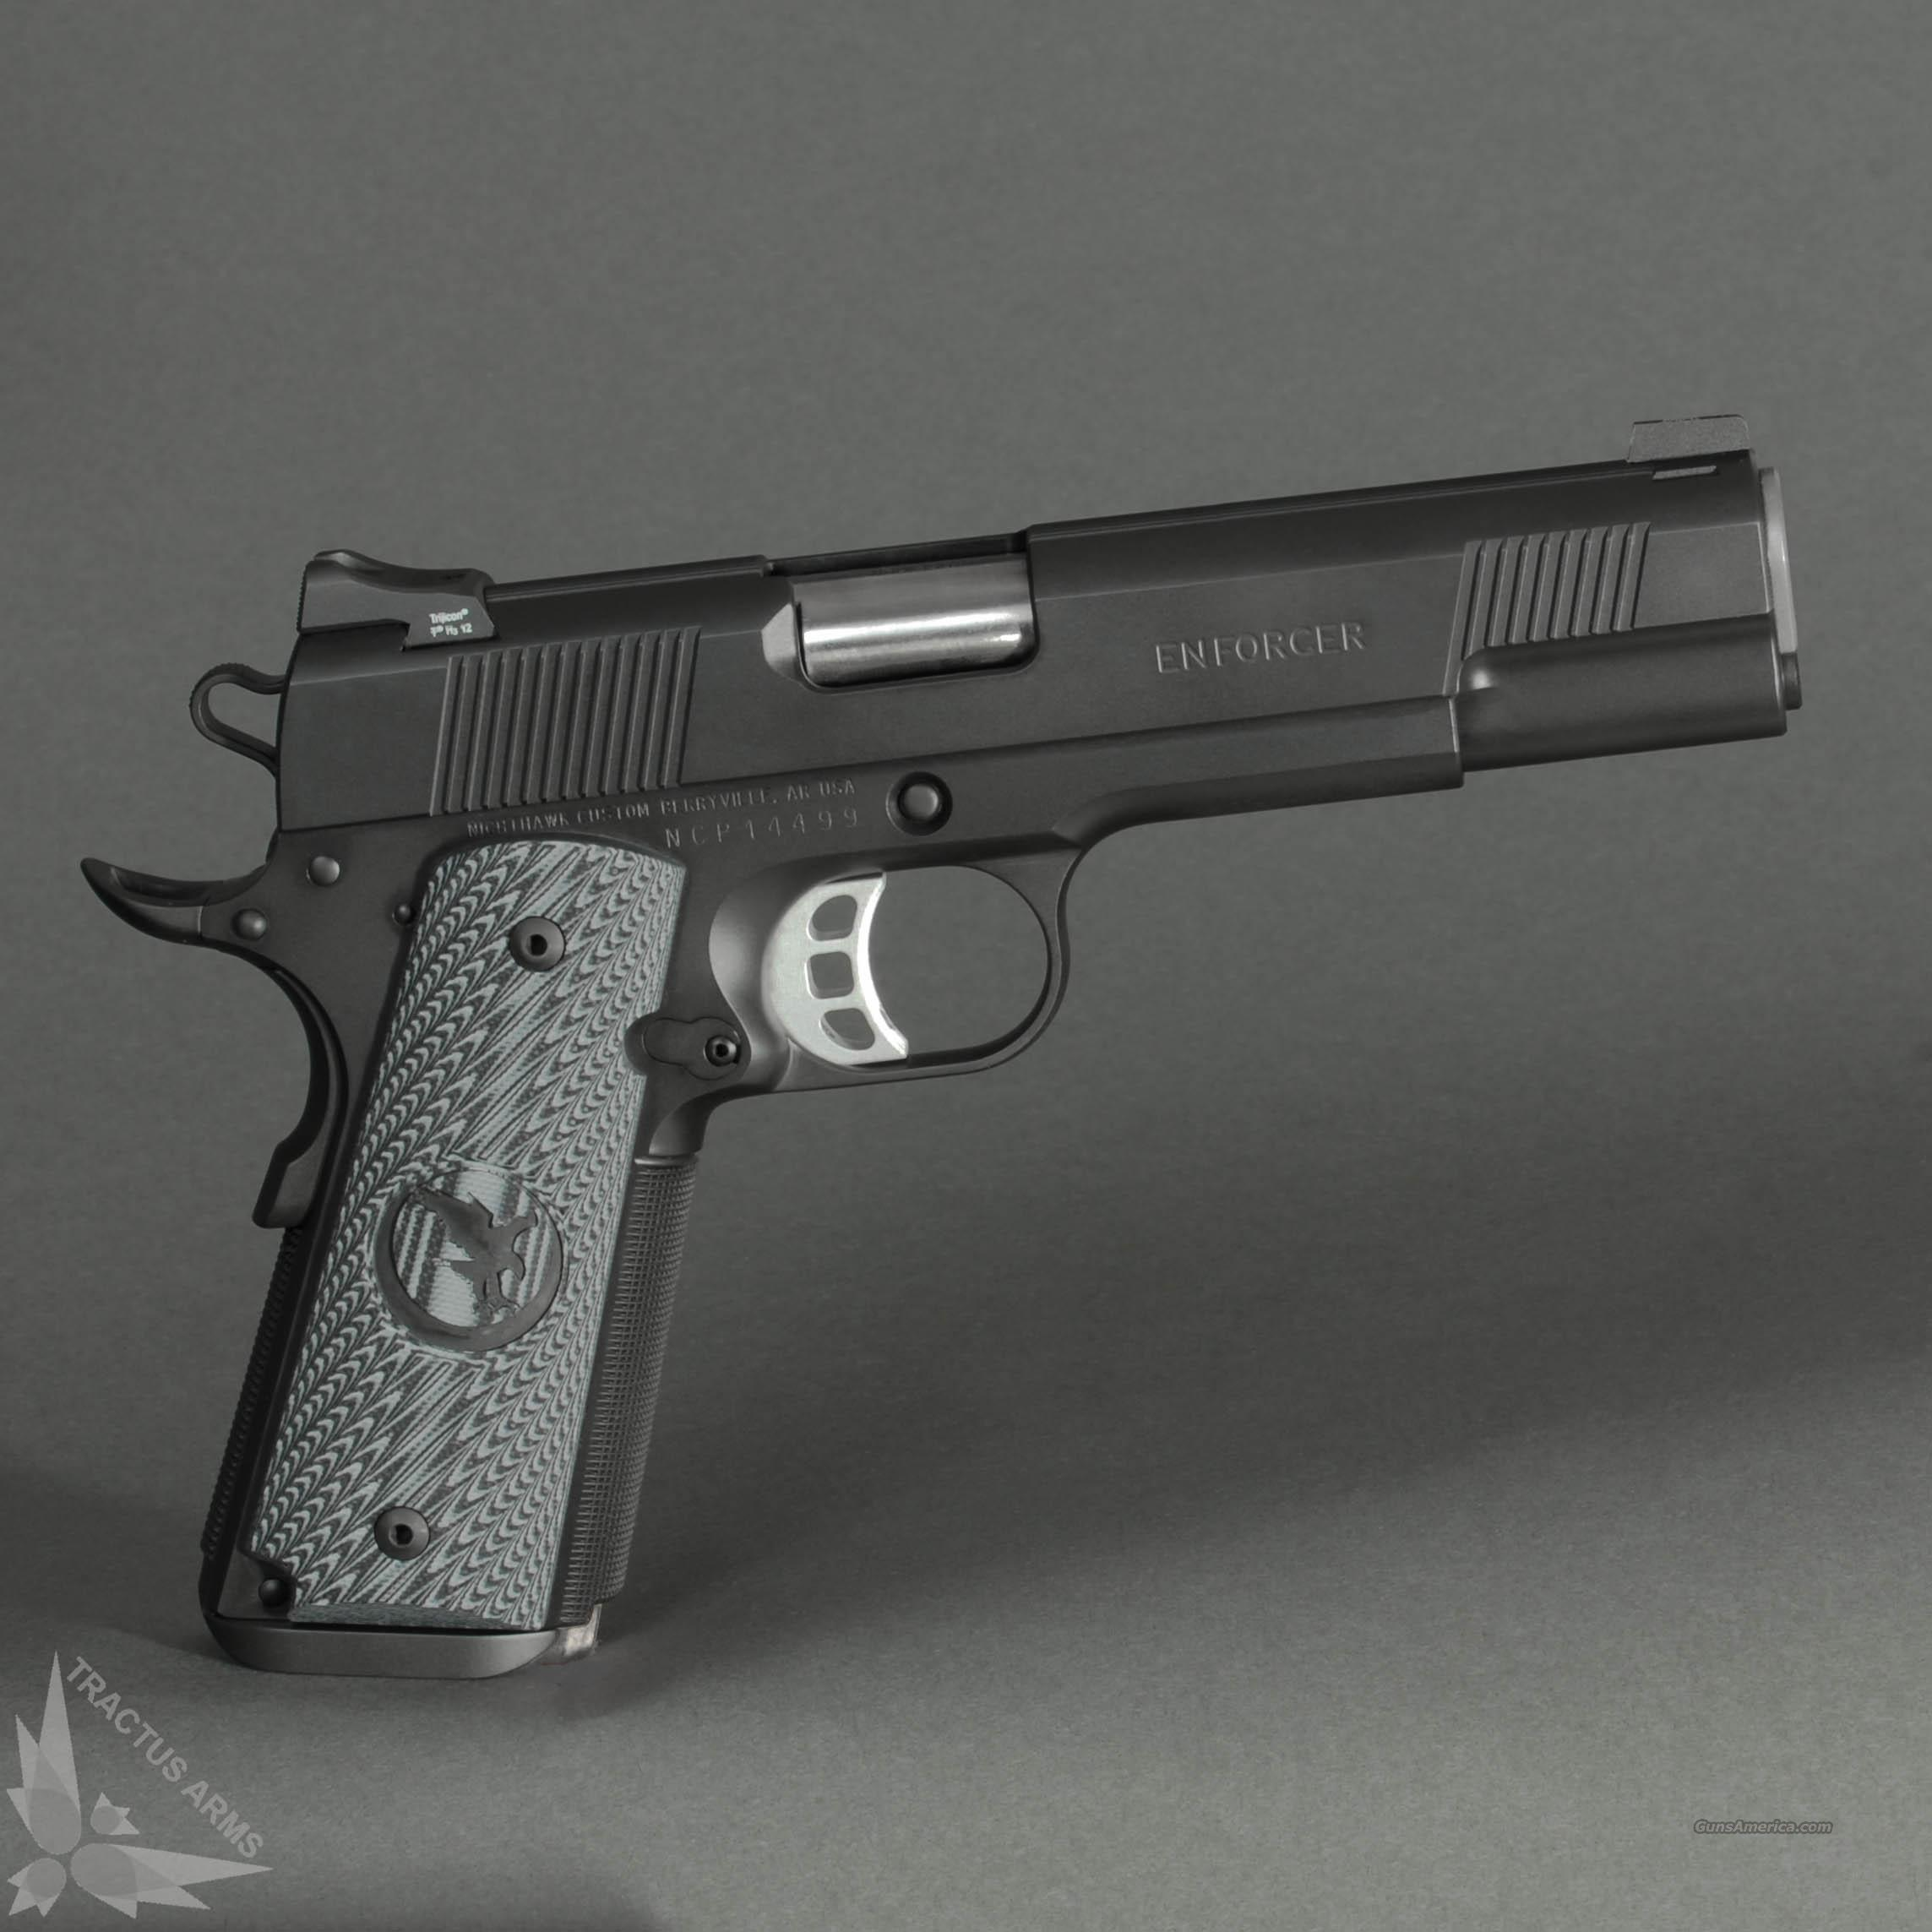 Nighthawk Custom Enforcer .45 ACP 1911  Guns > Pistols > Nighthawk Pistols